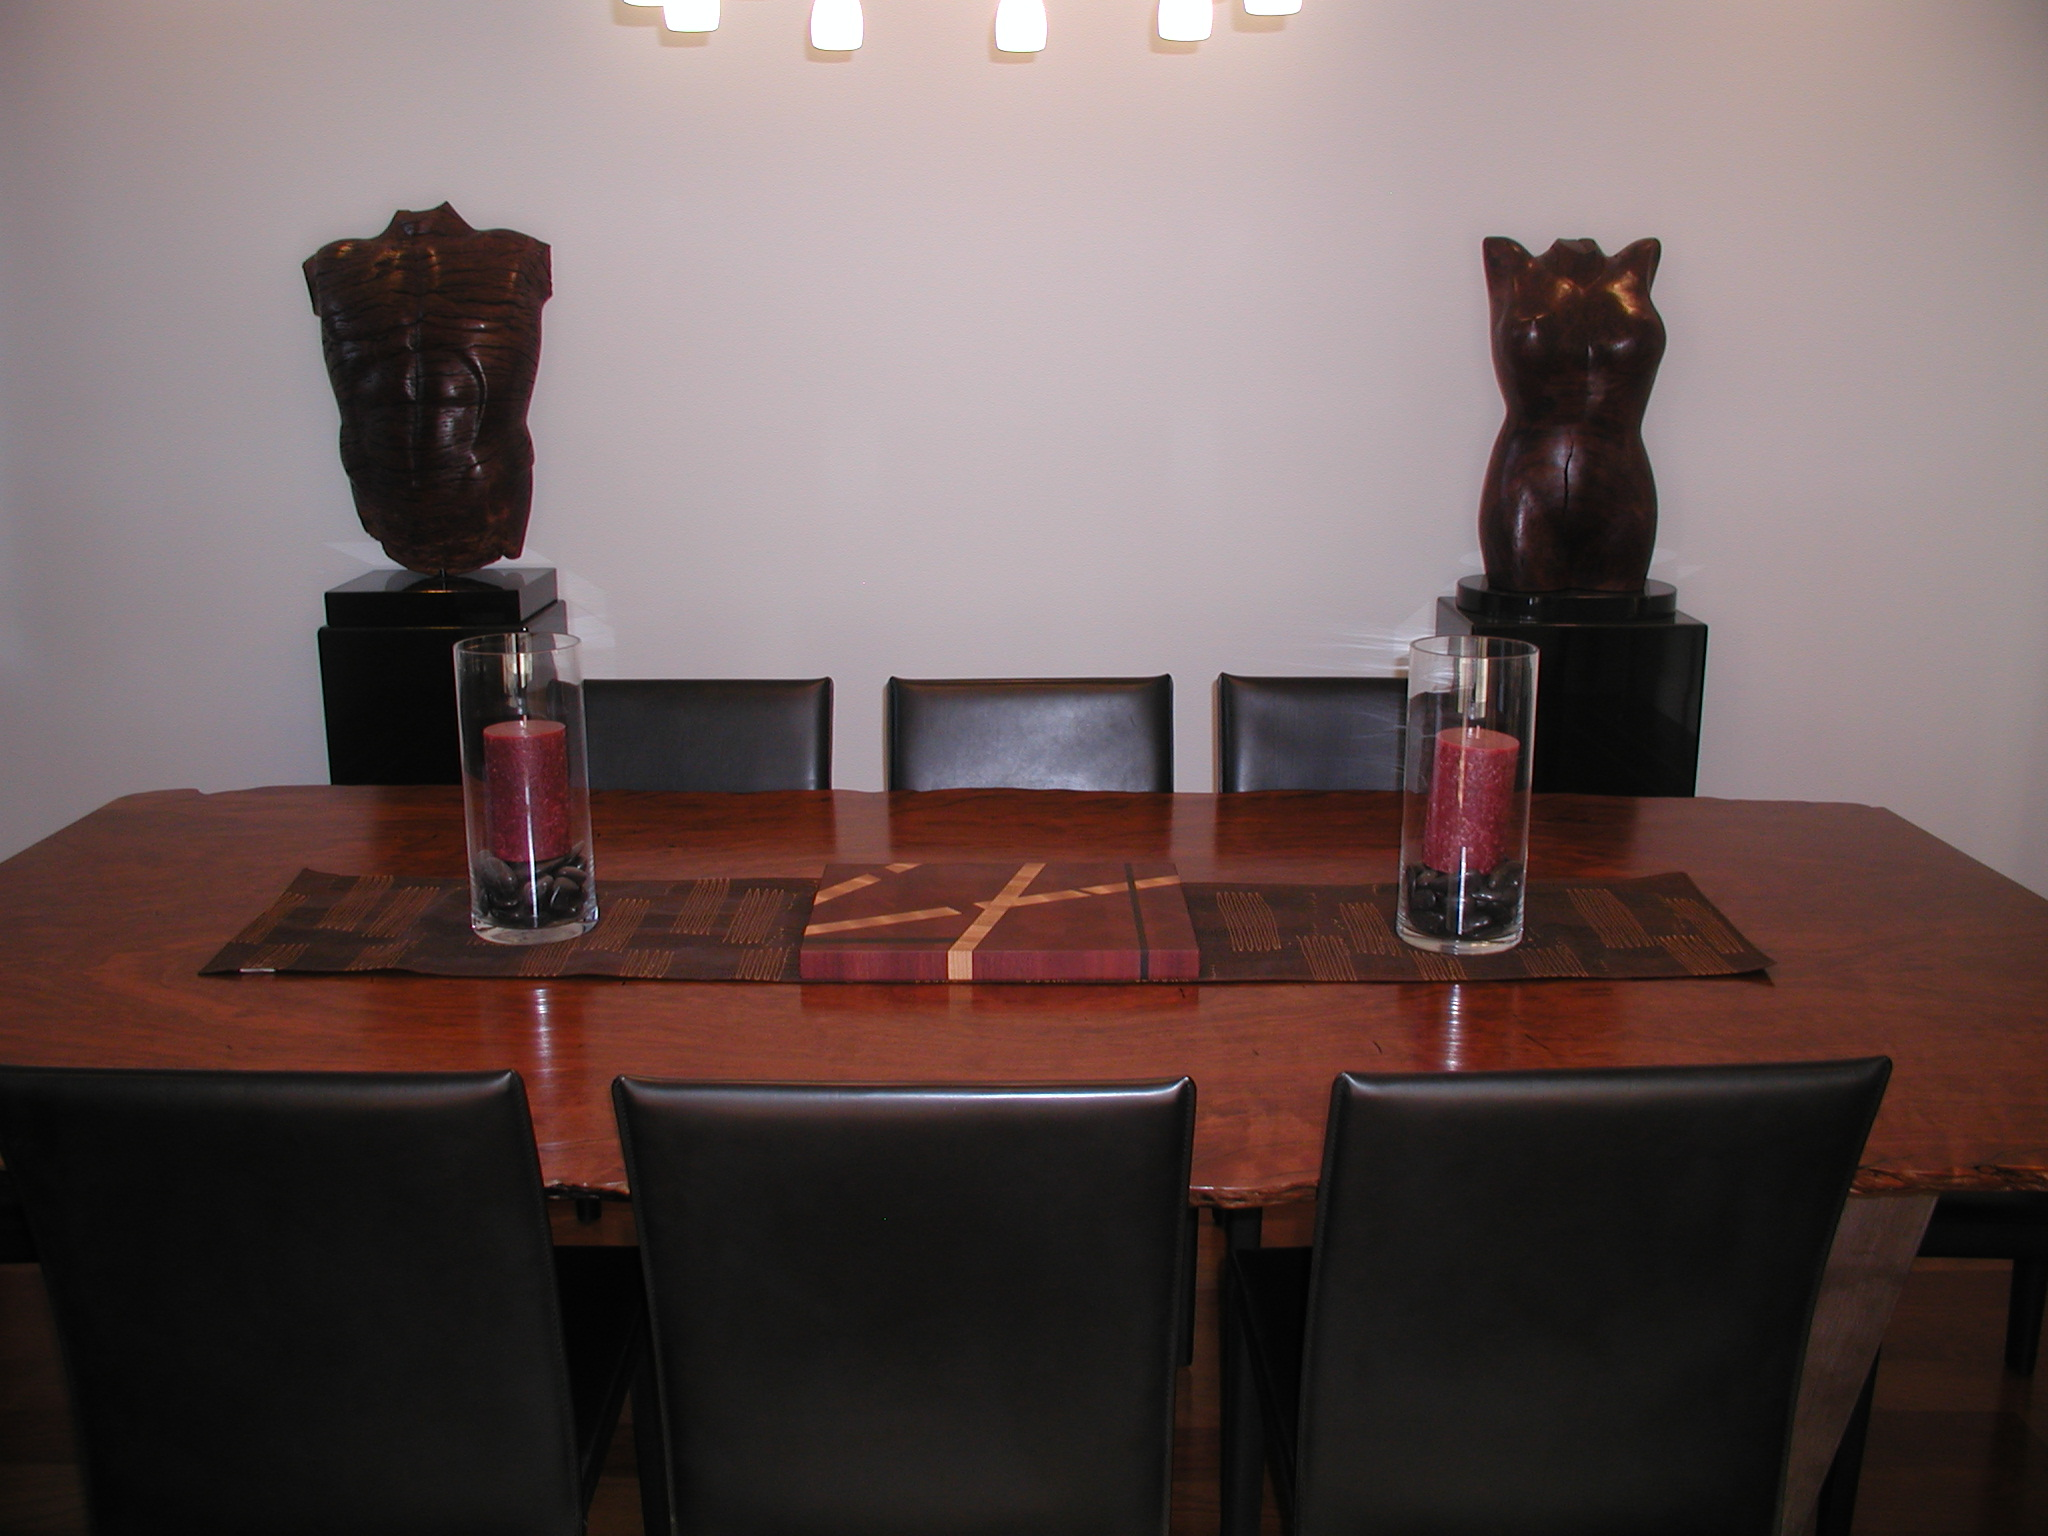 Cutting board in its final home in San Francisco, CA... sitting on a gorgeous table made of jarrah